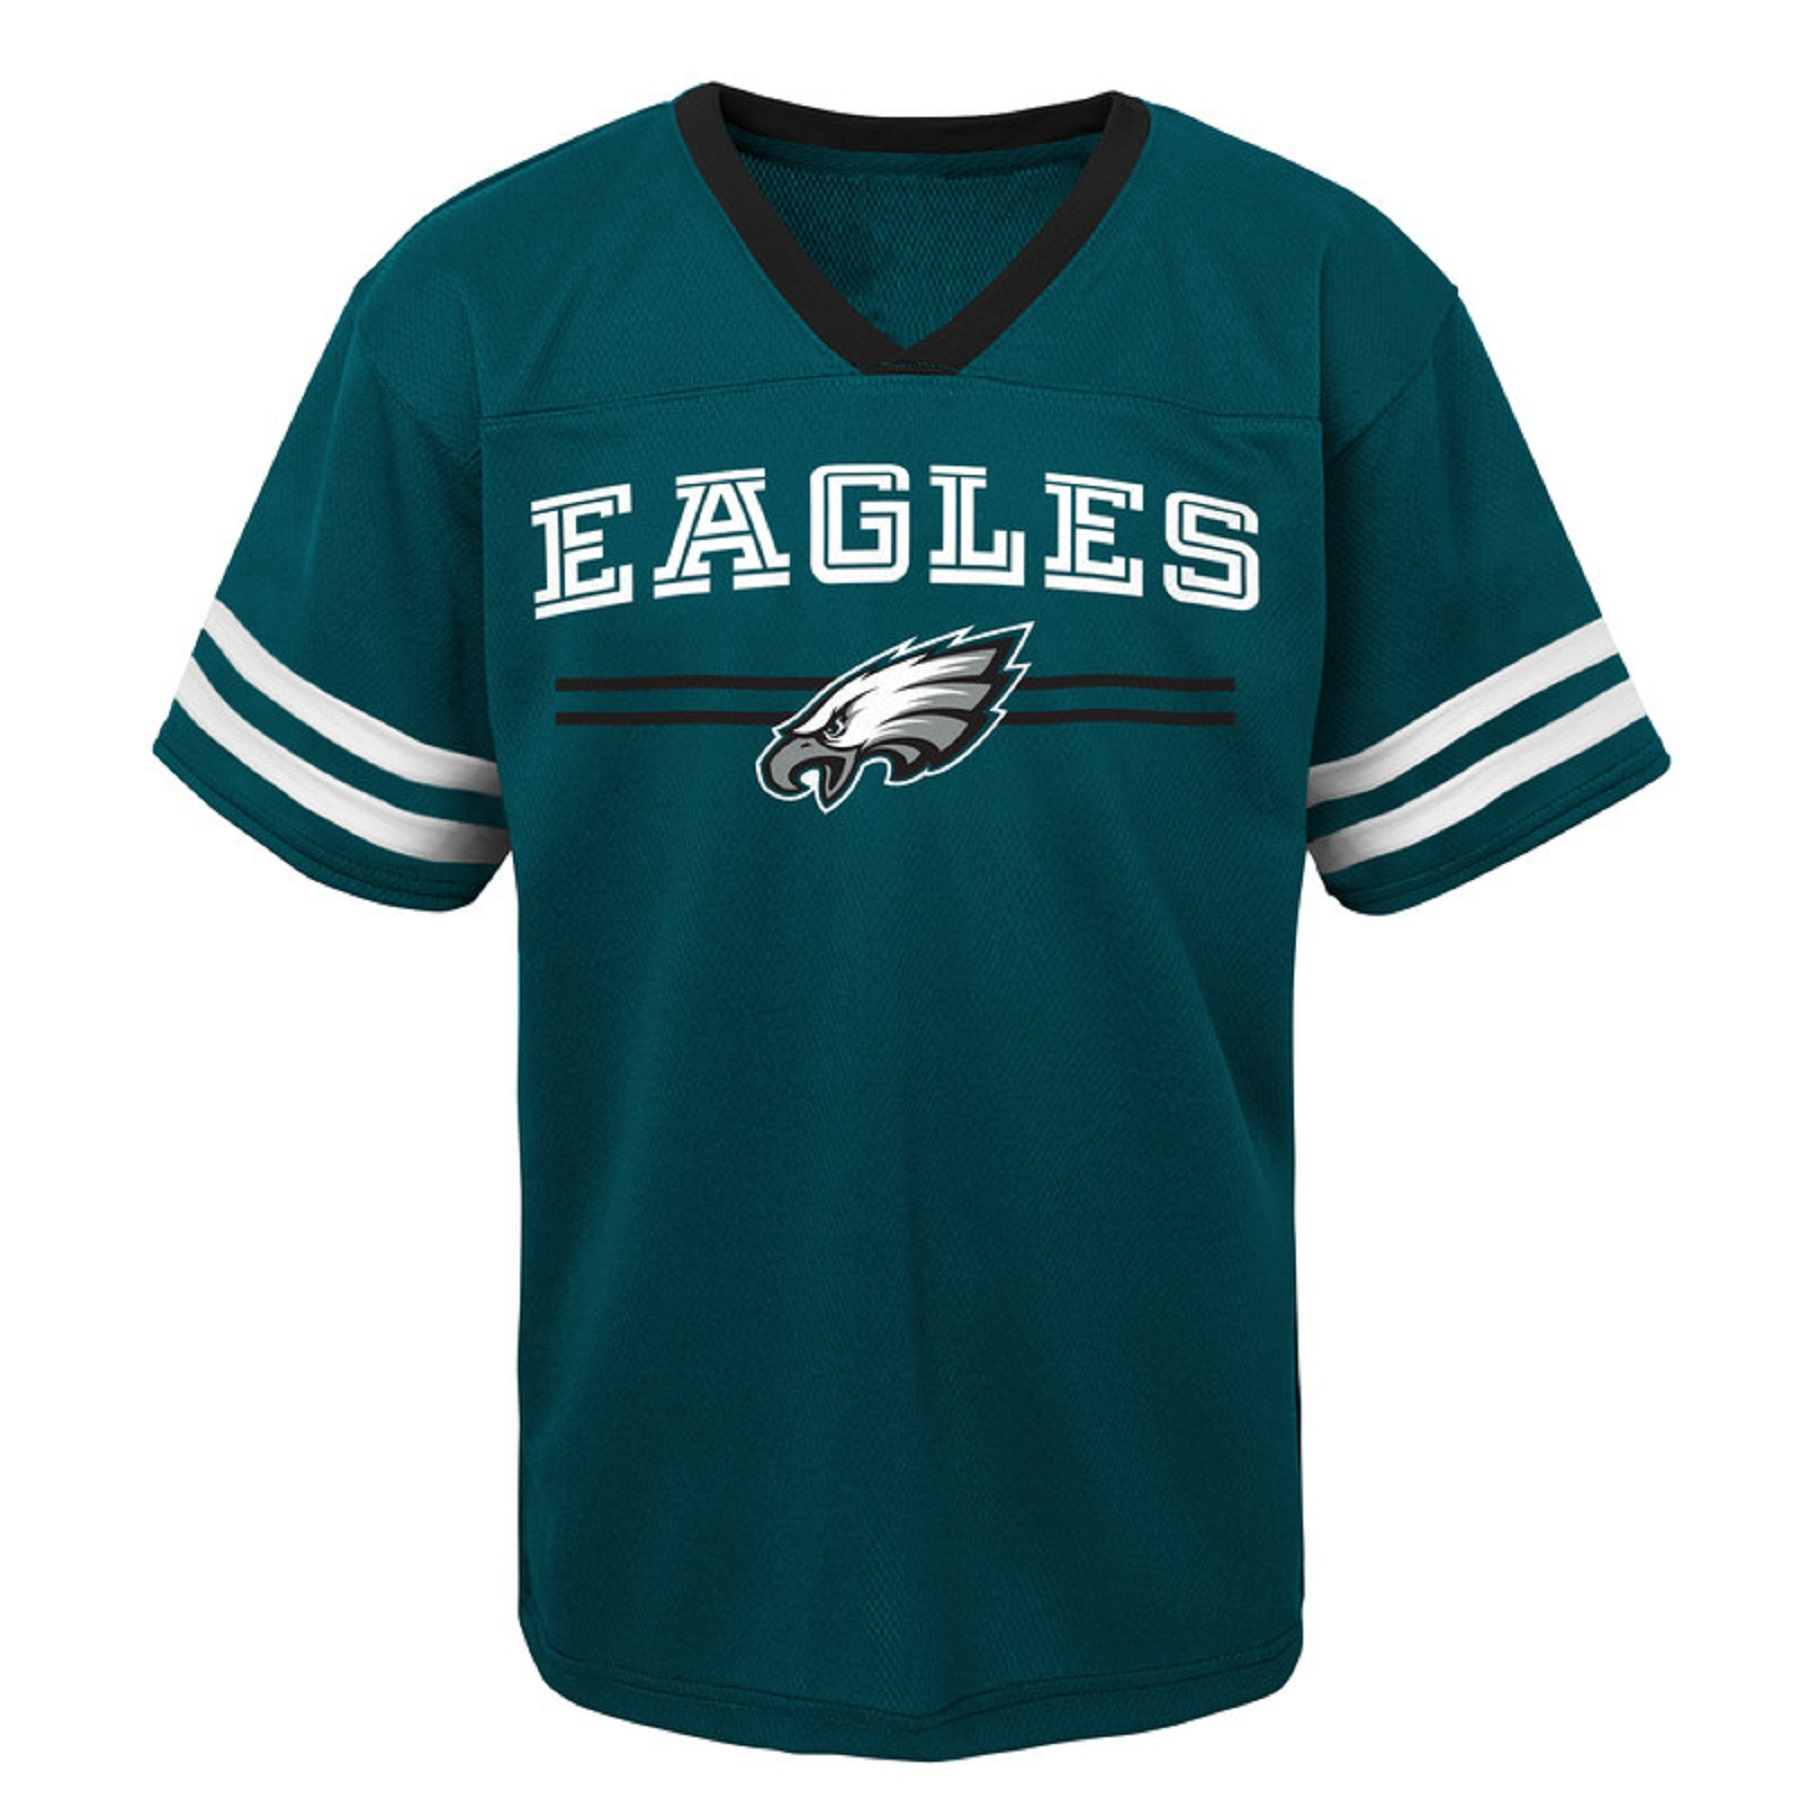 Youth Midnight Green Philadelphia Eagles Mesh V-Neck T-Shirt